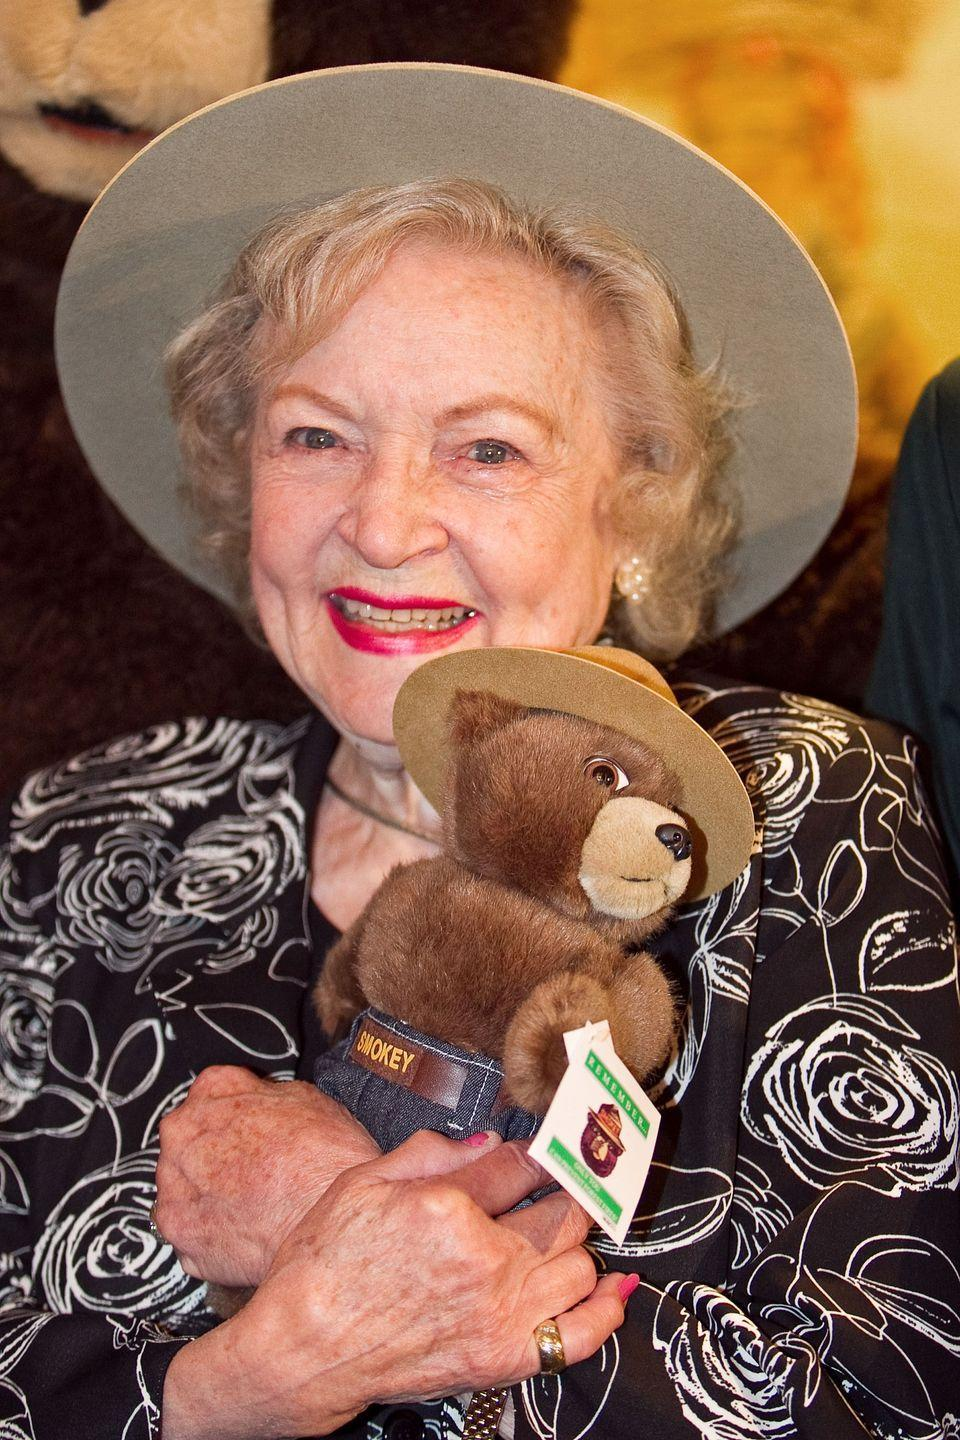 """<p>With three Emmy awards and more than six decades in the entertainment industry, Betty fulfilled a lifelong dream when she was made an honorary forest ranger in 2010. As a child, she dreamed of becoming a park ranger or zookeeper, but one thing stood in her way. """"Back then, girls were not allowed to become forest rangers,"""" she told <a href=""""http://abcnewsradioonline.com/entertainment-news/2010/11/9/actress-betty-white-made-honorary-us-forest-ranger.html"""" rel=""""nofollow noopener"""" target=""""_blank"""" data-ylk=""""slk:ABC News"""" class=""""link rapid-noclick-resp"""">ABC News</a>. </p>"""